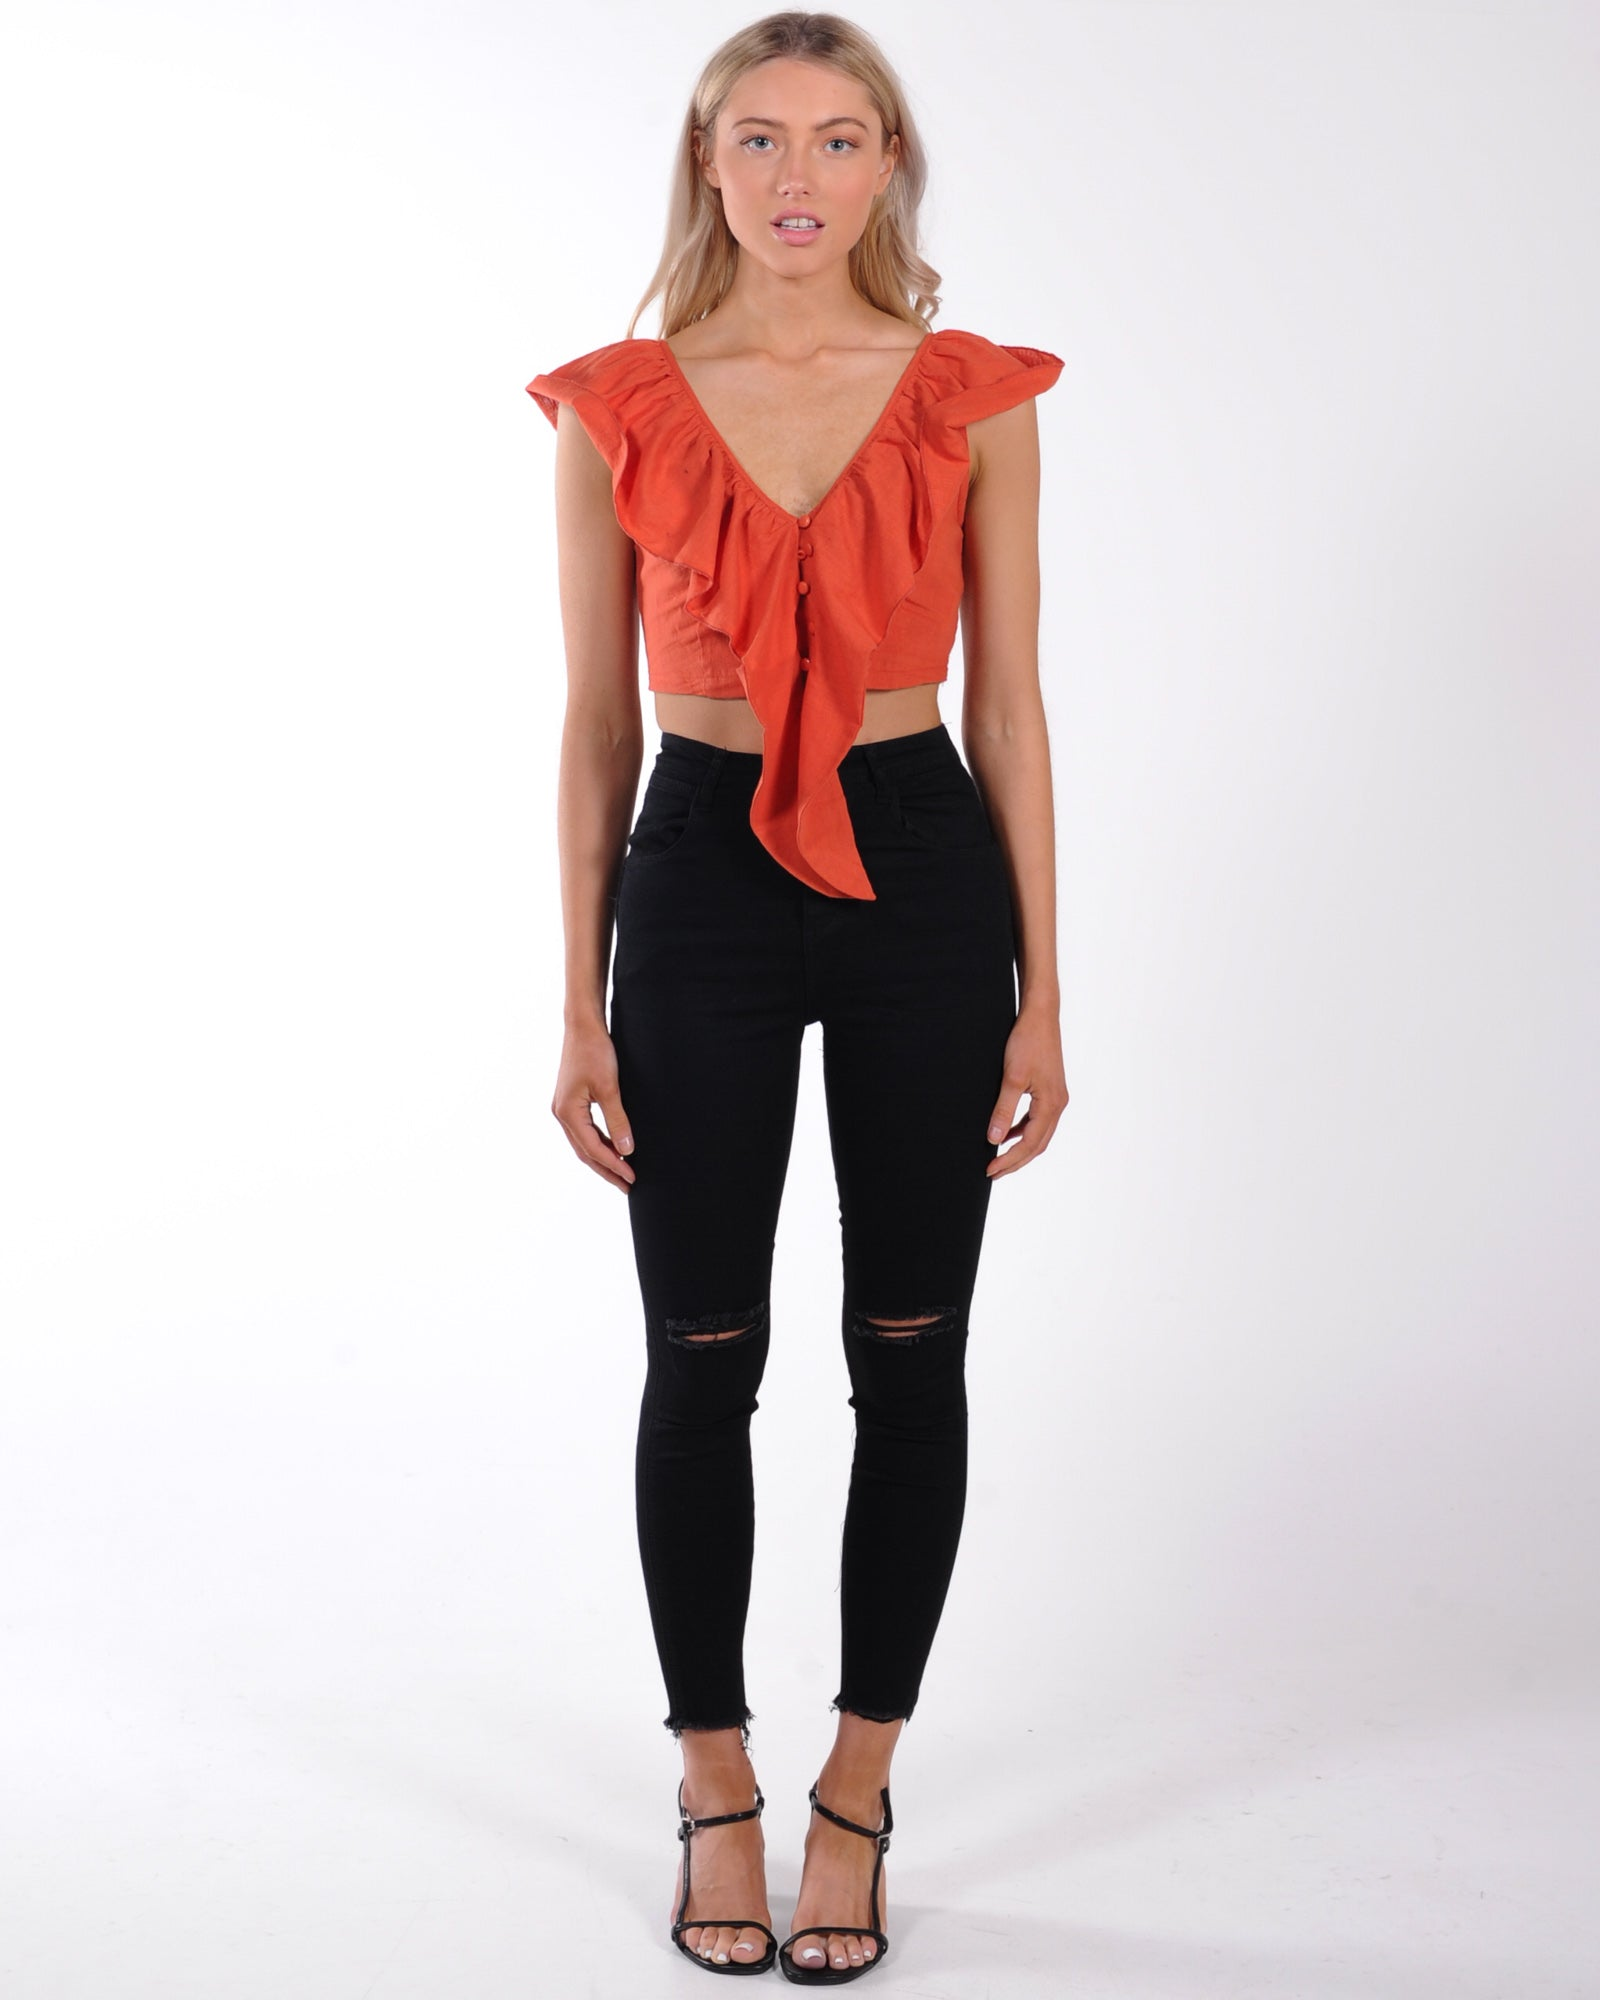 Star Struck Crop Top - Orange